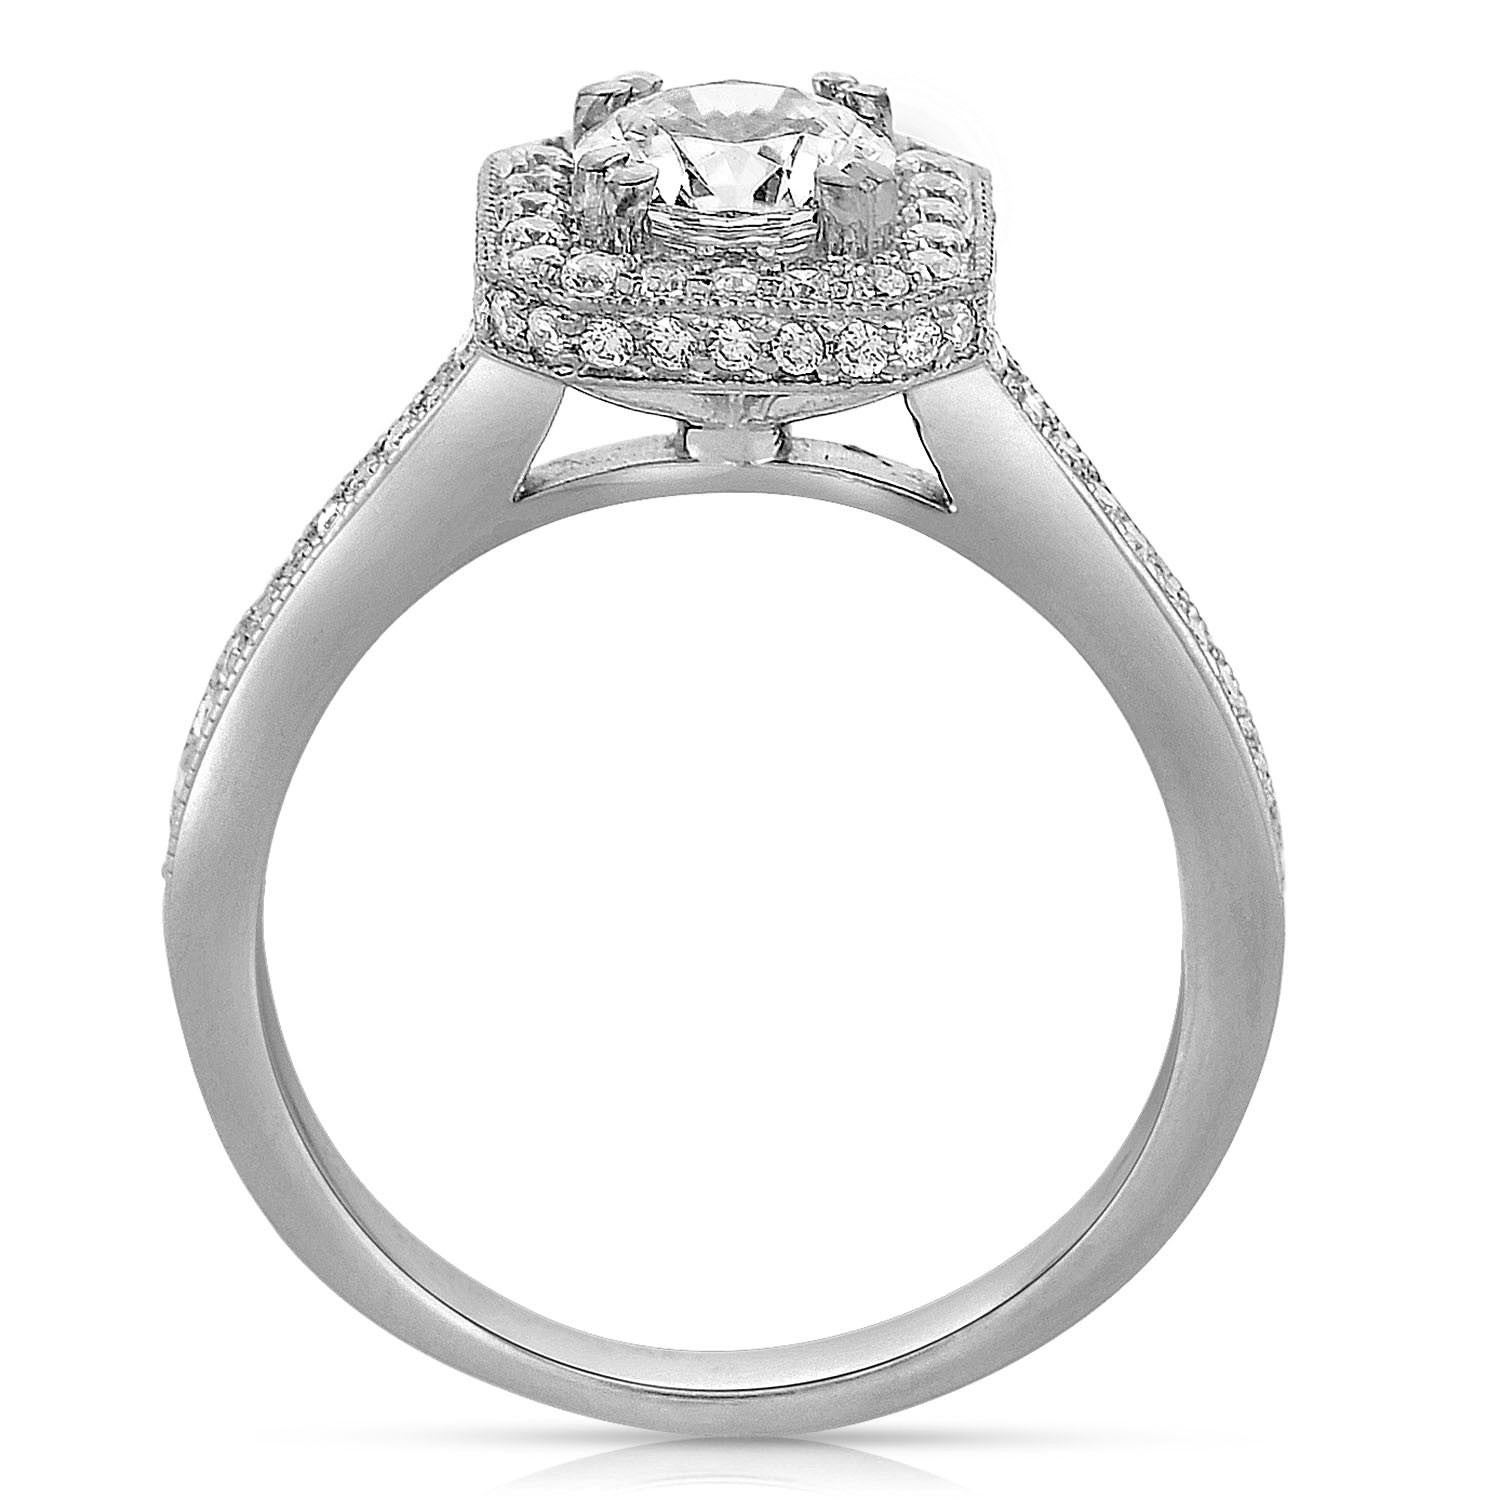 Ladies' Cushion Halo 14k White Gold Engagement Ring